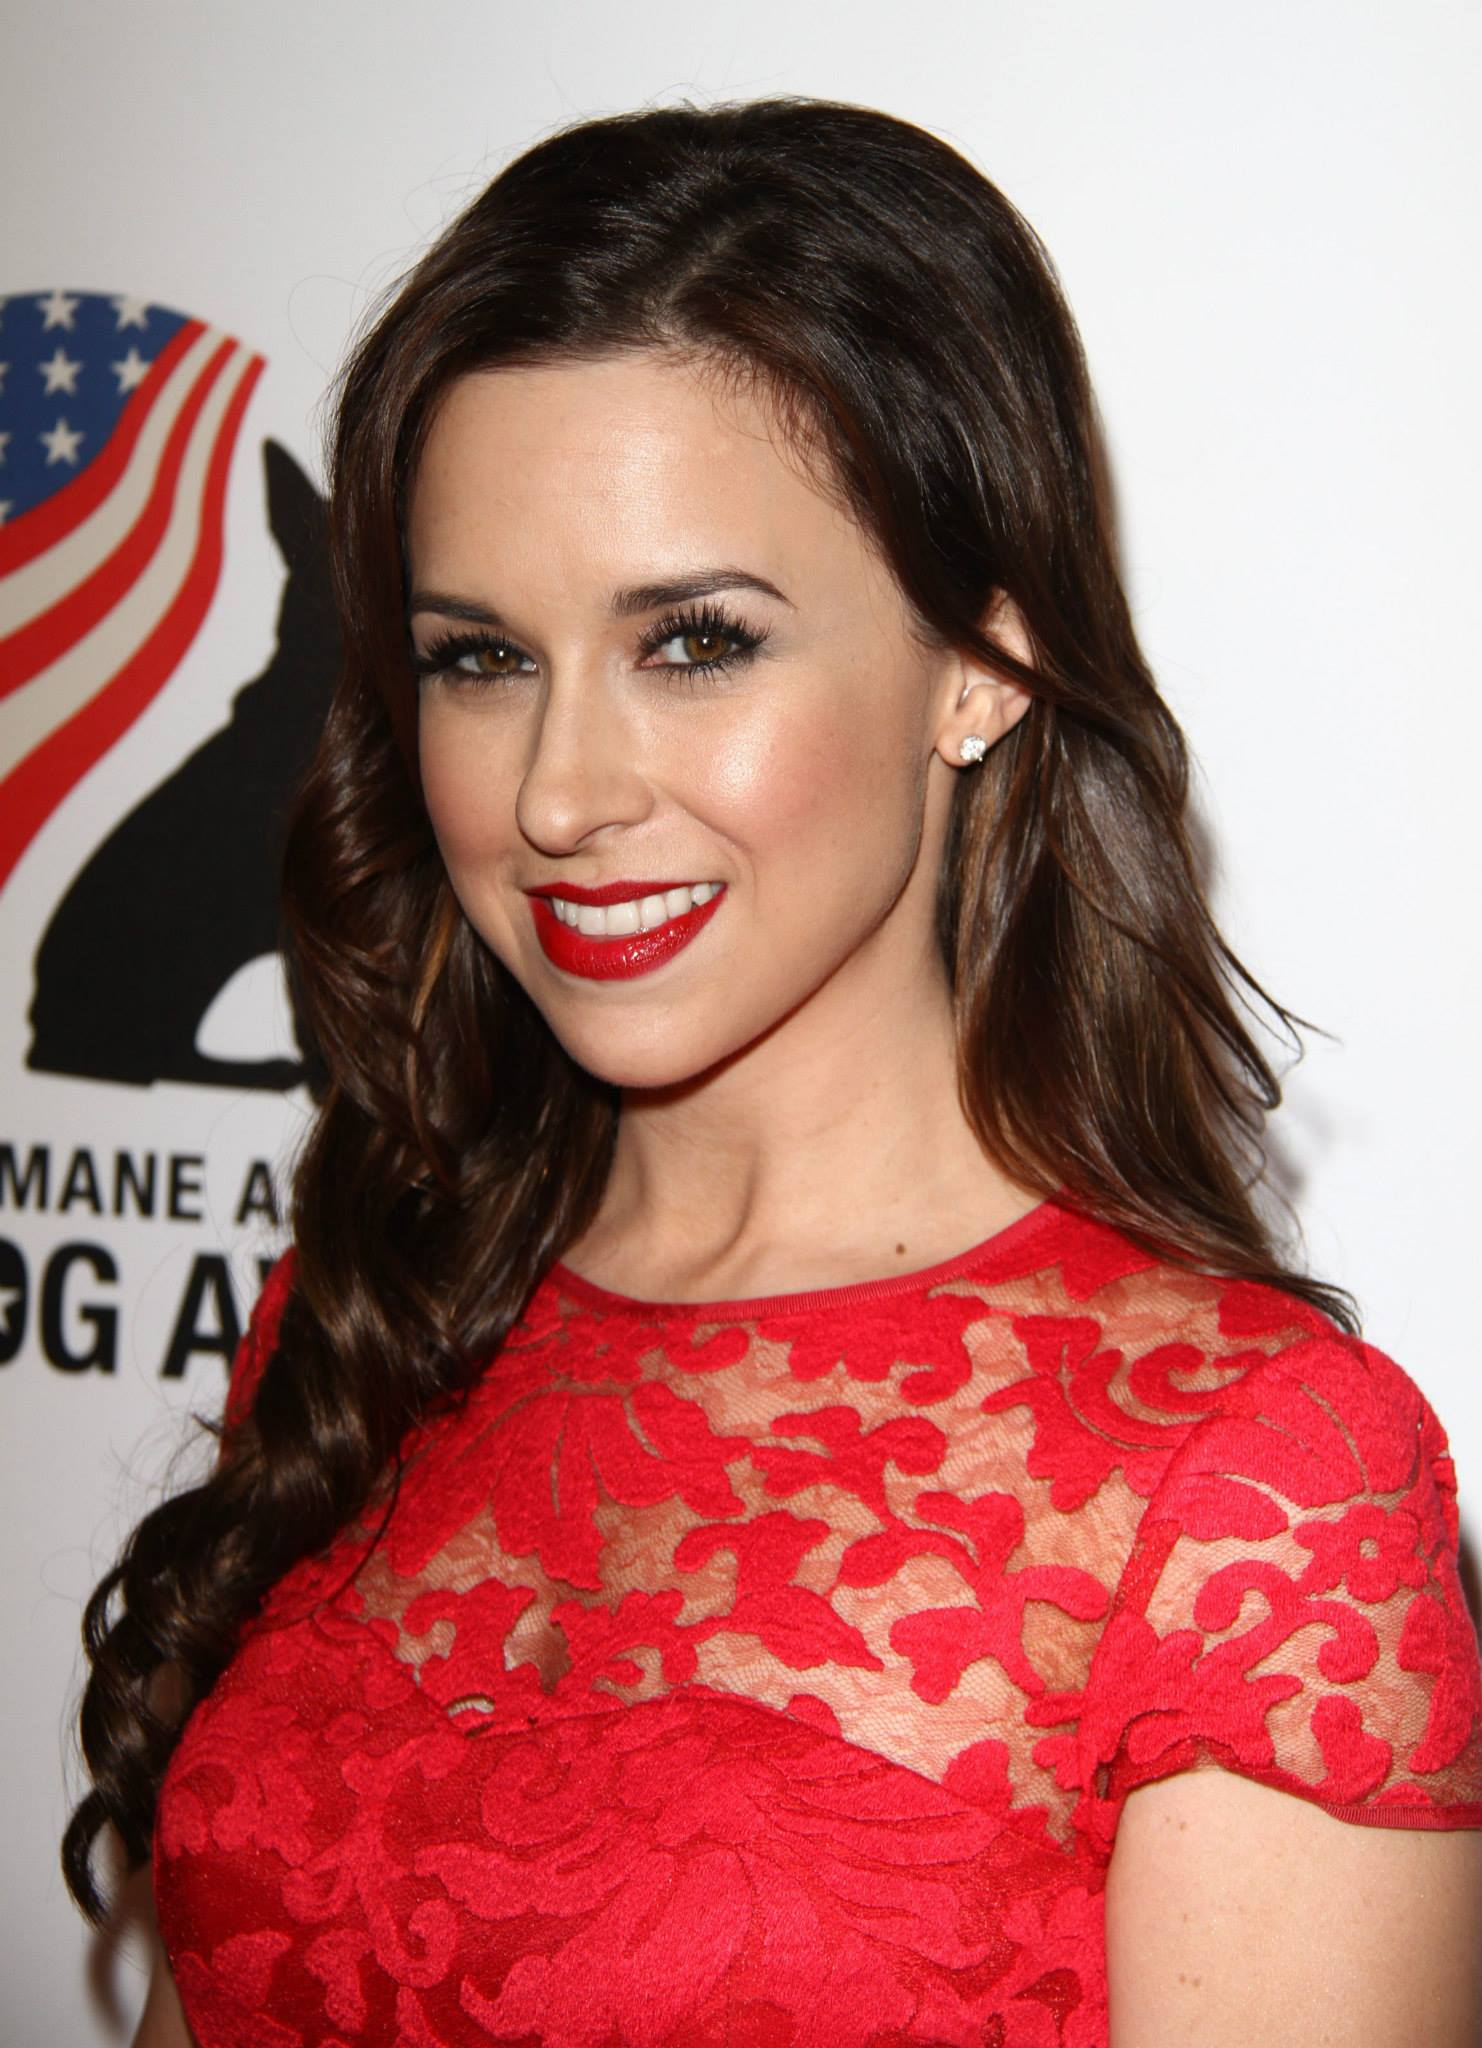 Lacey Chabert in a red dress on the red carpet